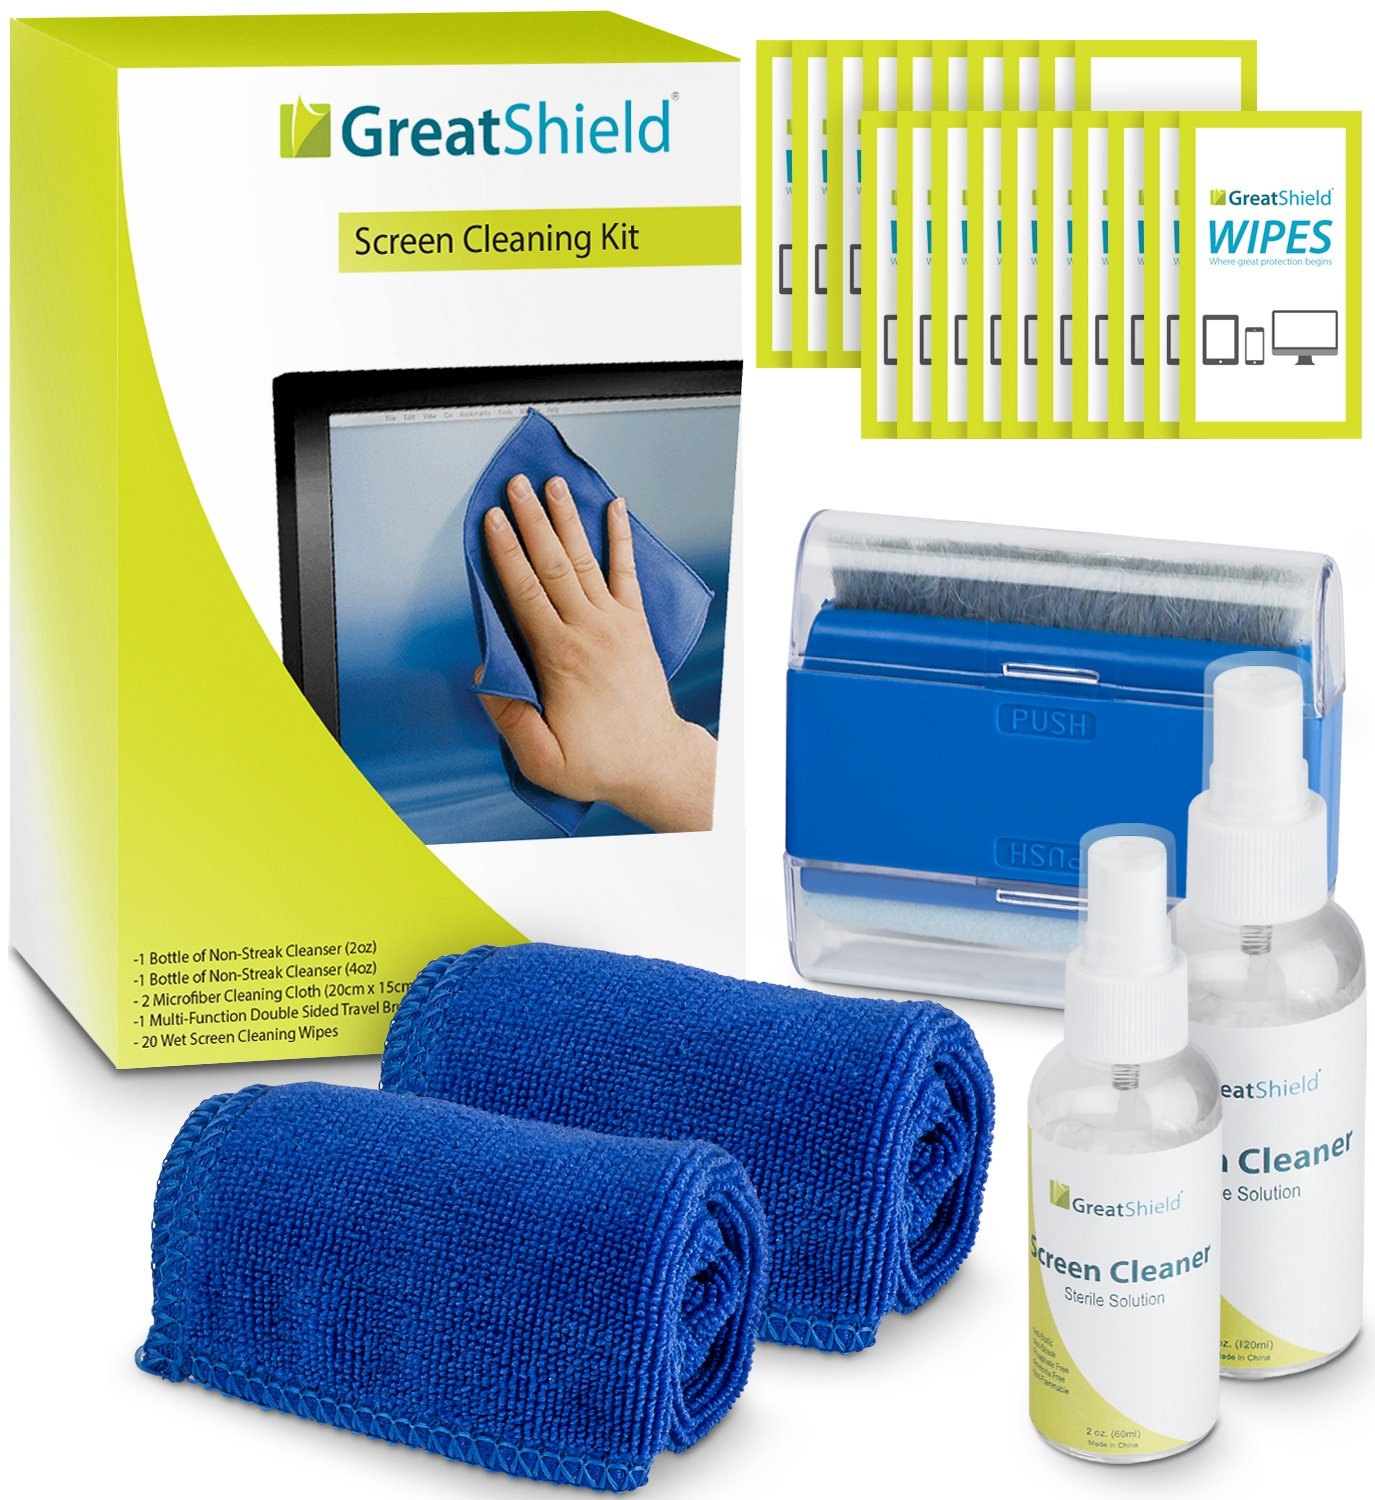 GreatShield Screen Cleaning Kit with 2 Bottle Solution (60ml and 120ml), 2 Microfiber Cloths, 20 Non-Alcohol Screen Cleaning Wipes, and Brush for Laptops, PC monitors, Smartphones, Tablets, iPhone, iPad, LED, TVs, DSLR Cameras, Camcorders GS09095